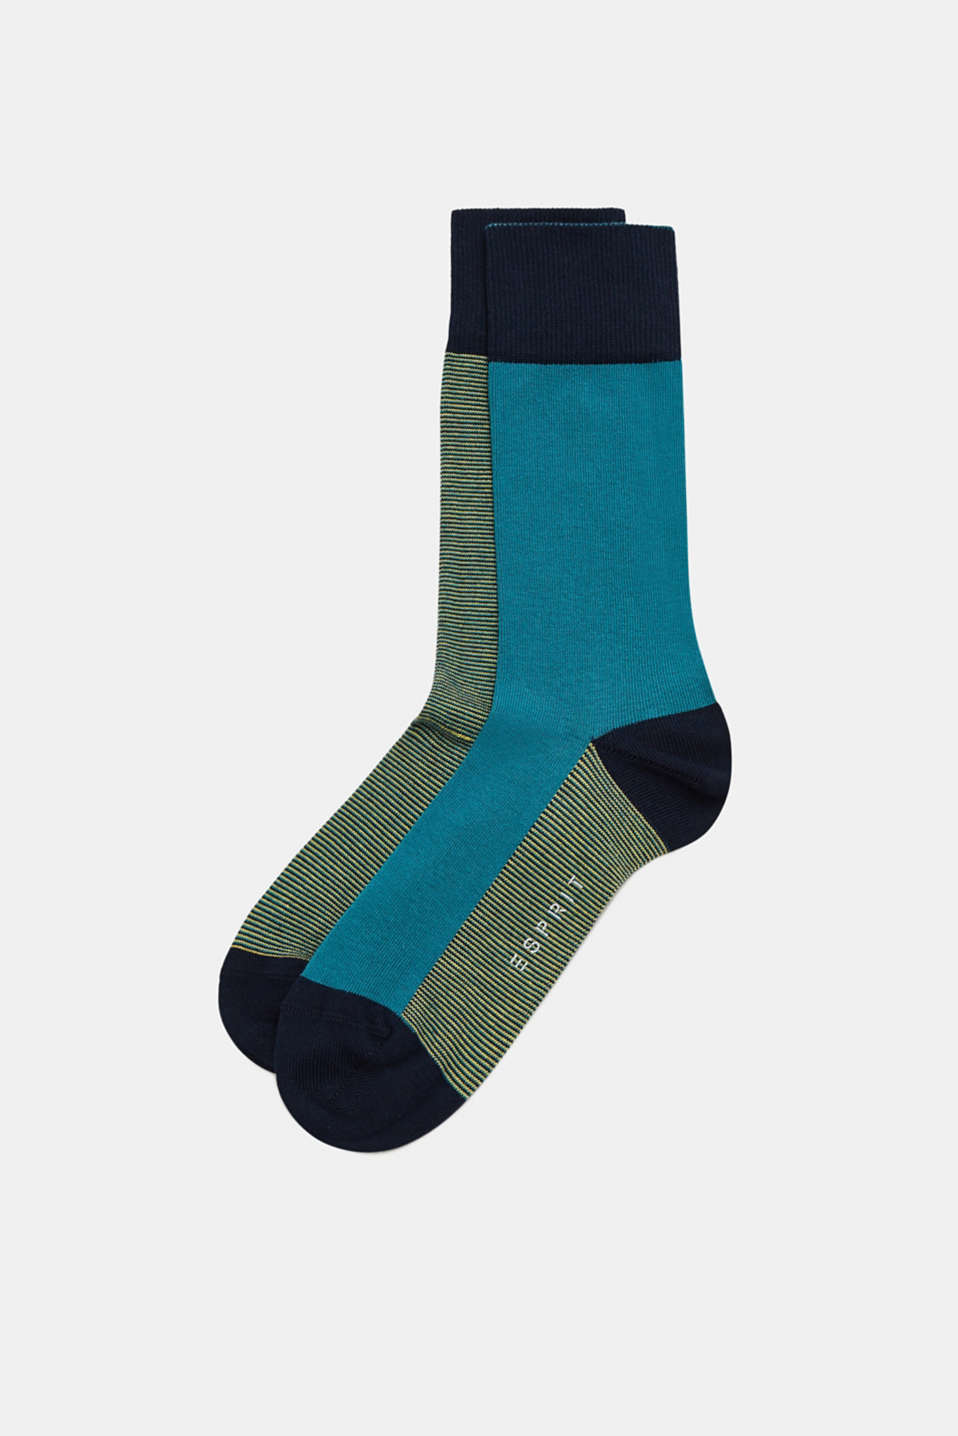 Esprit - Double pack of socks with stripes, made of blended cotton